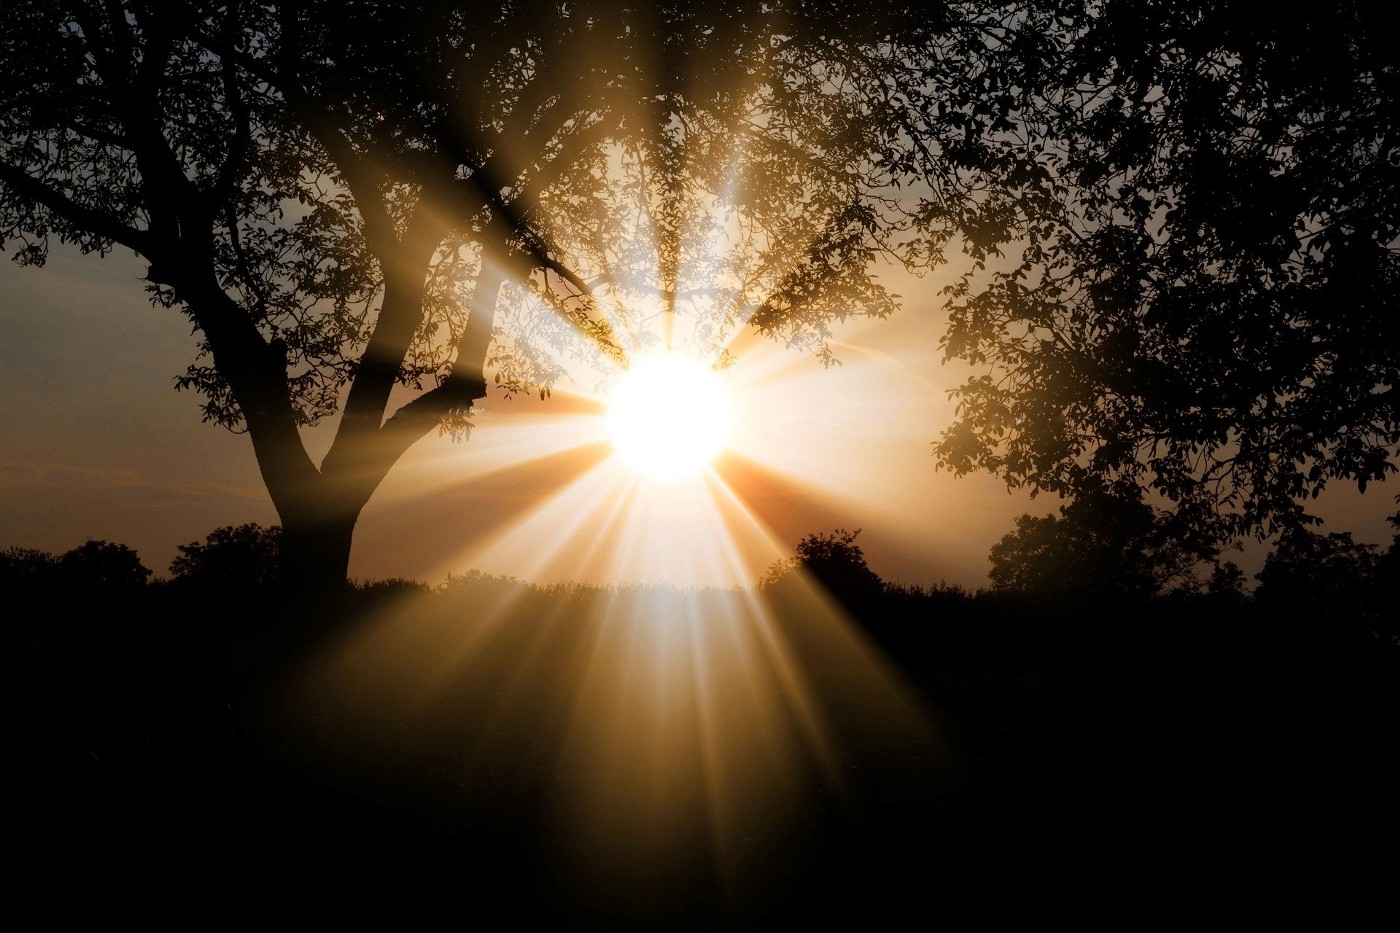 Sun shining over the Earth through the leaves of two trees in the foreground